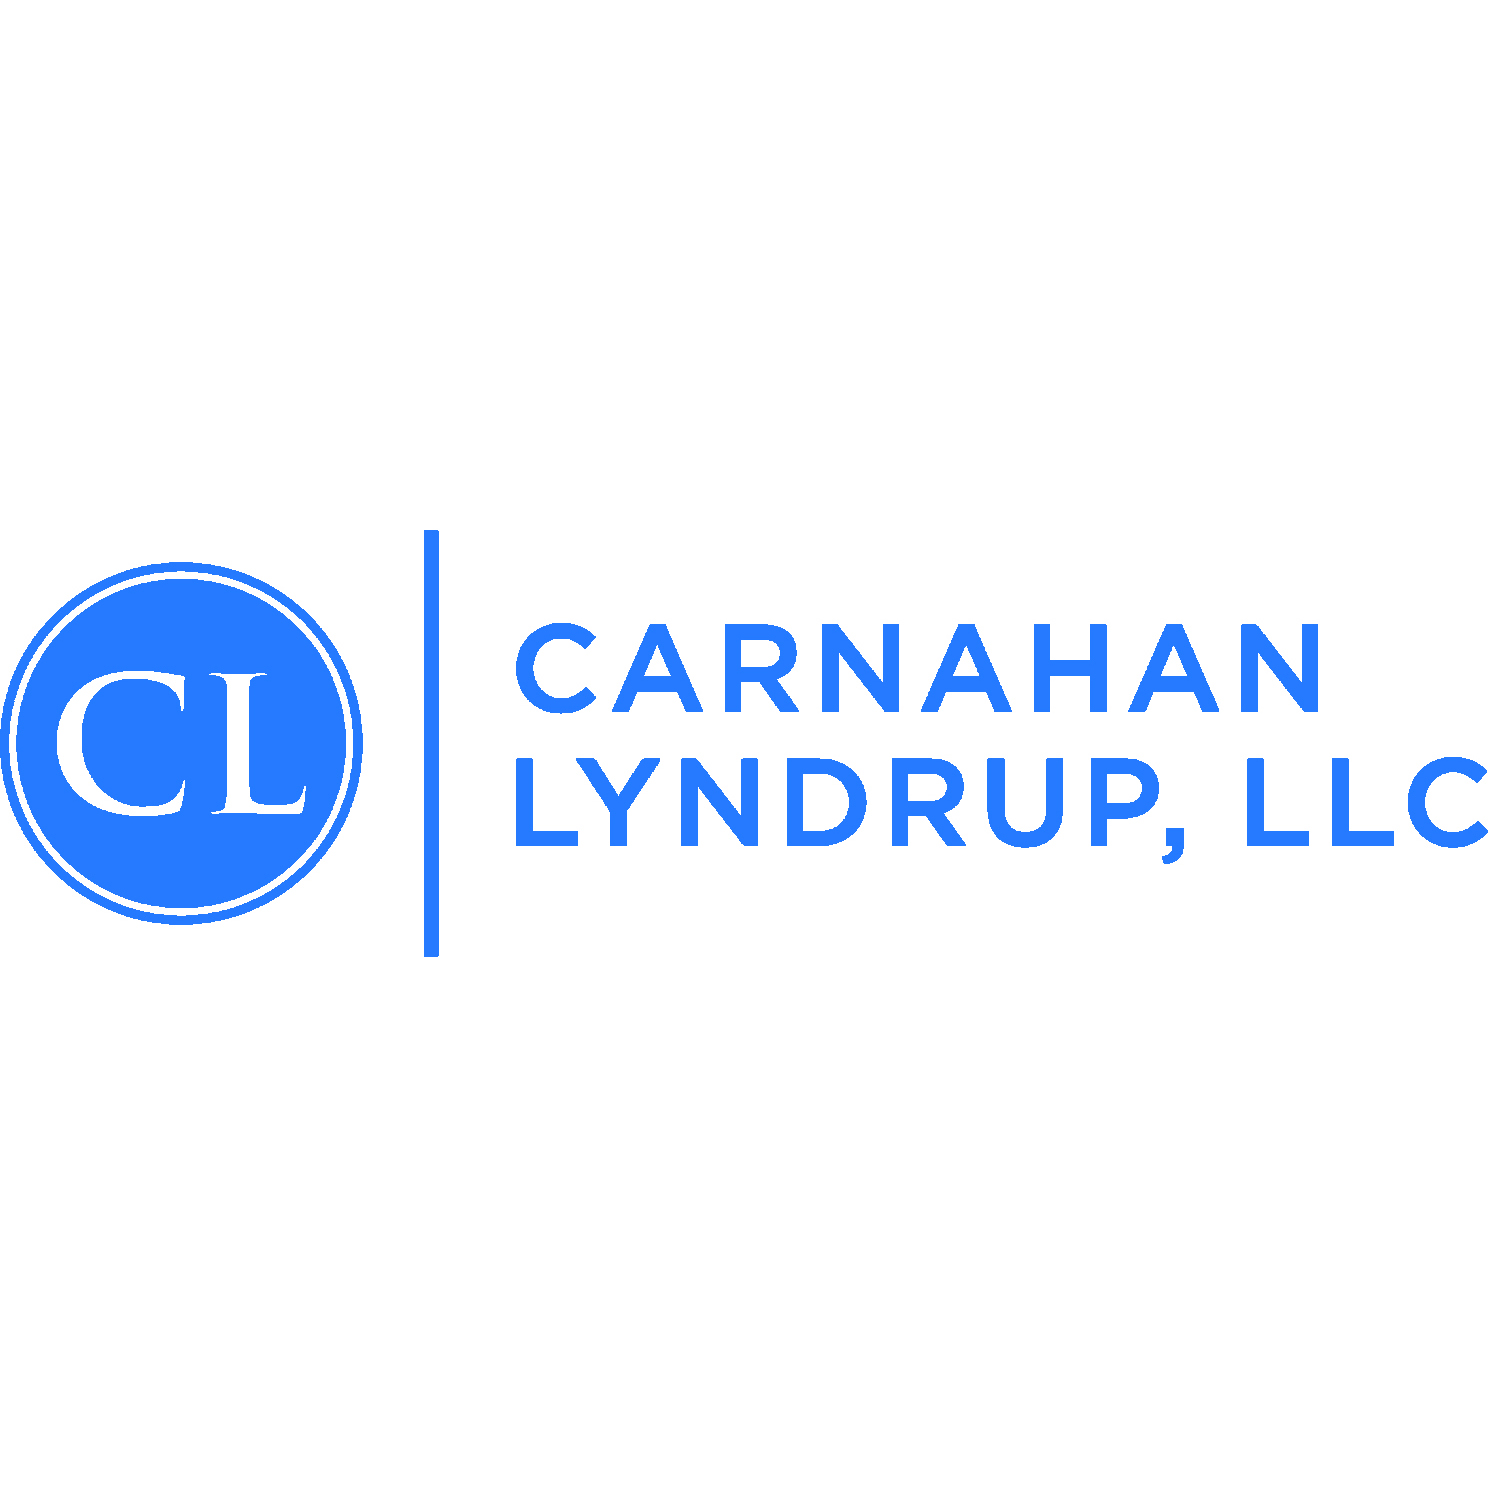 Copy of carnahan lyndrup educational consultant college university and admissions planners - website design - marketing and creative consulting